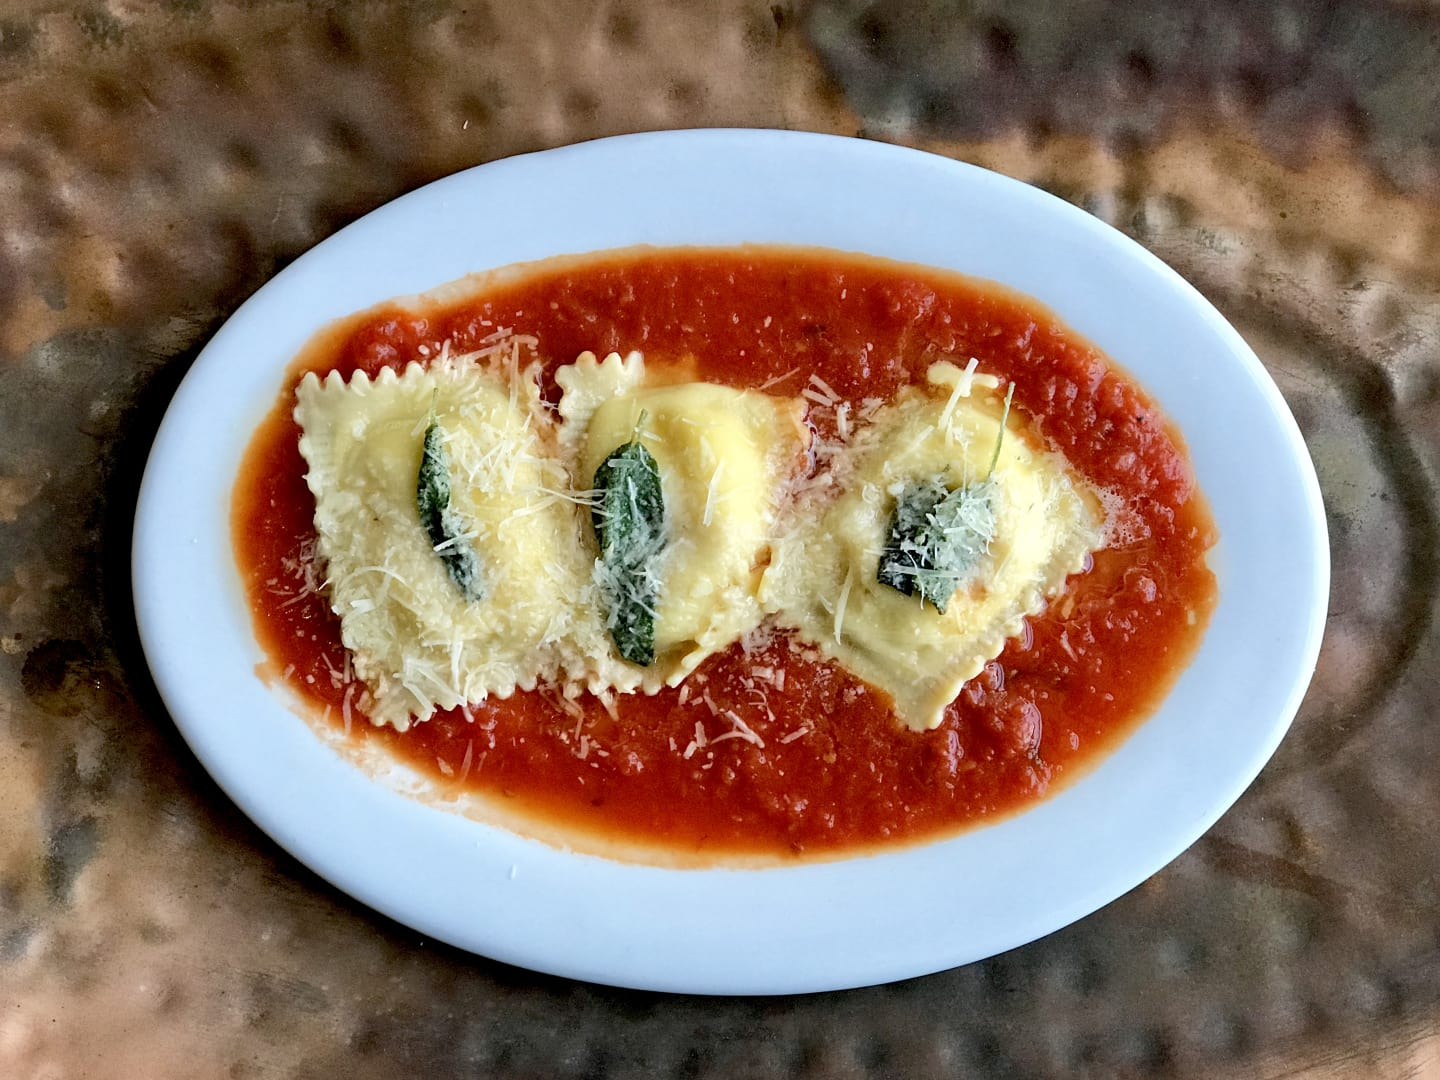 Cheese & Marinara Ravioli